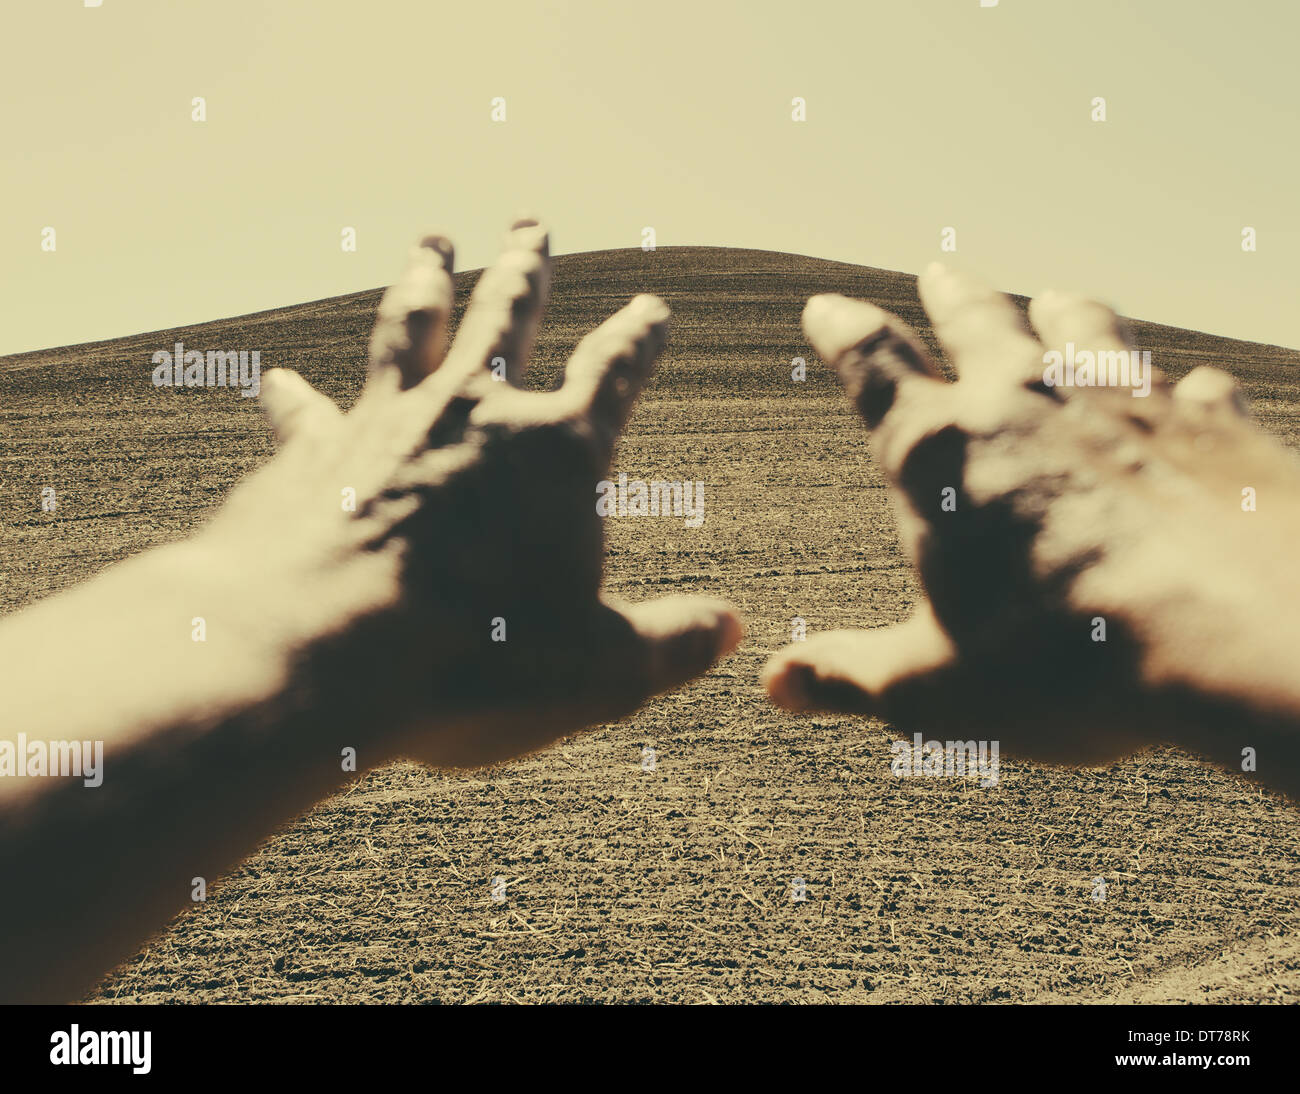 Hands extending reaching out towards ploughed farmland, near Pullman, Washington, USA Stock Photo